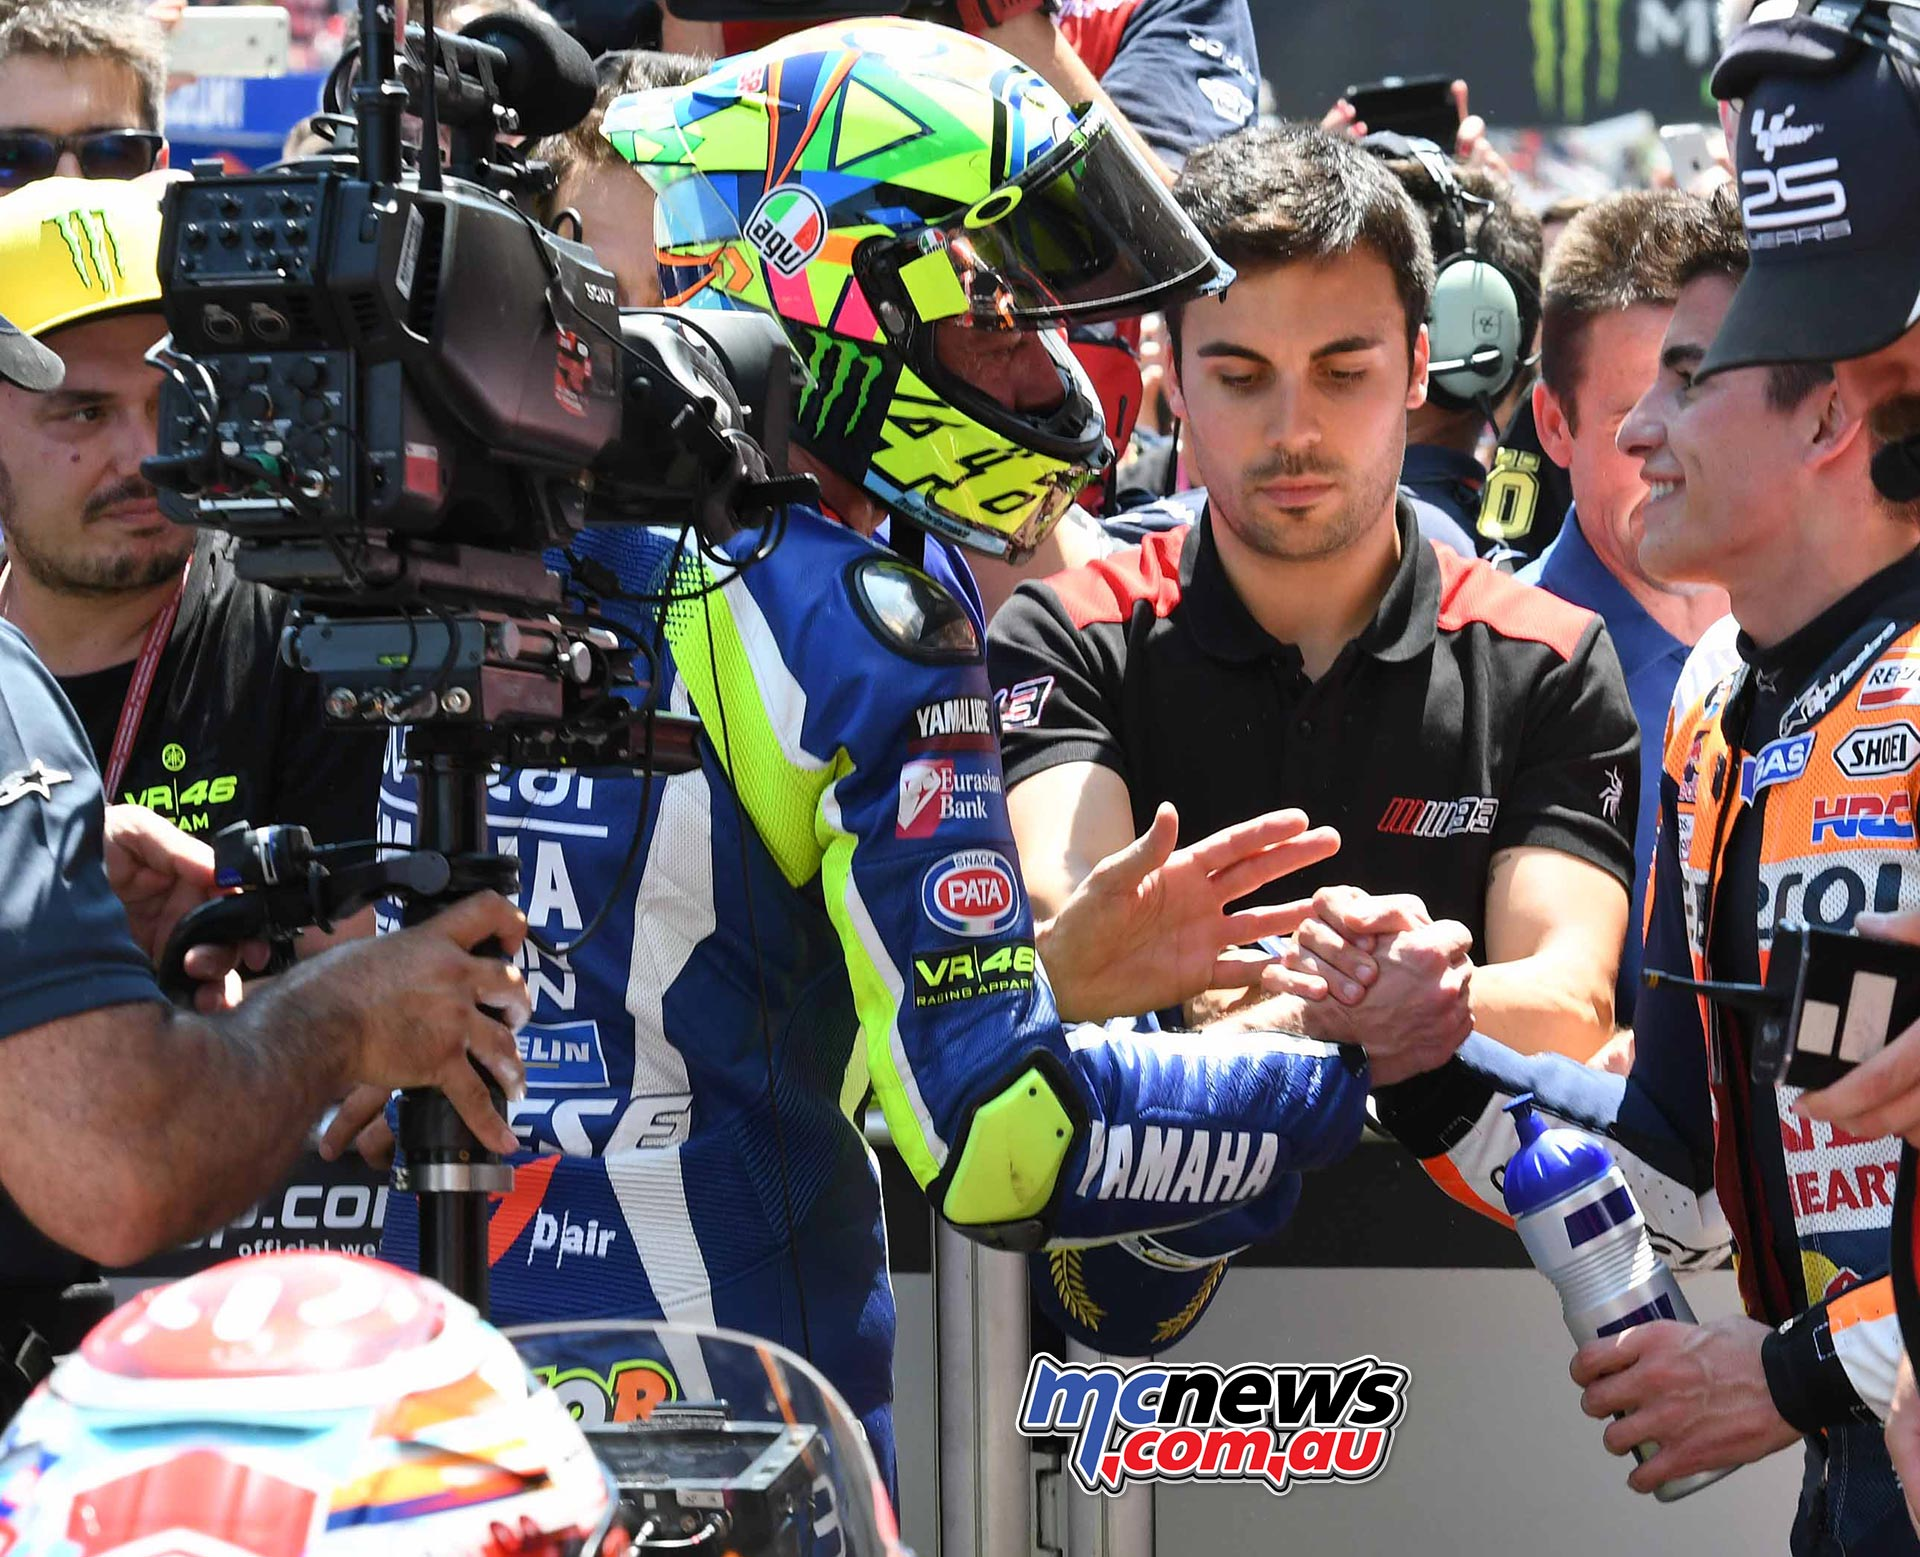 Valentino Rossi and Marc Marquez shake hands in Parc Ferme after a hectic battle at Catalunya MotoGP 2016